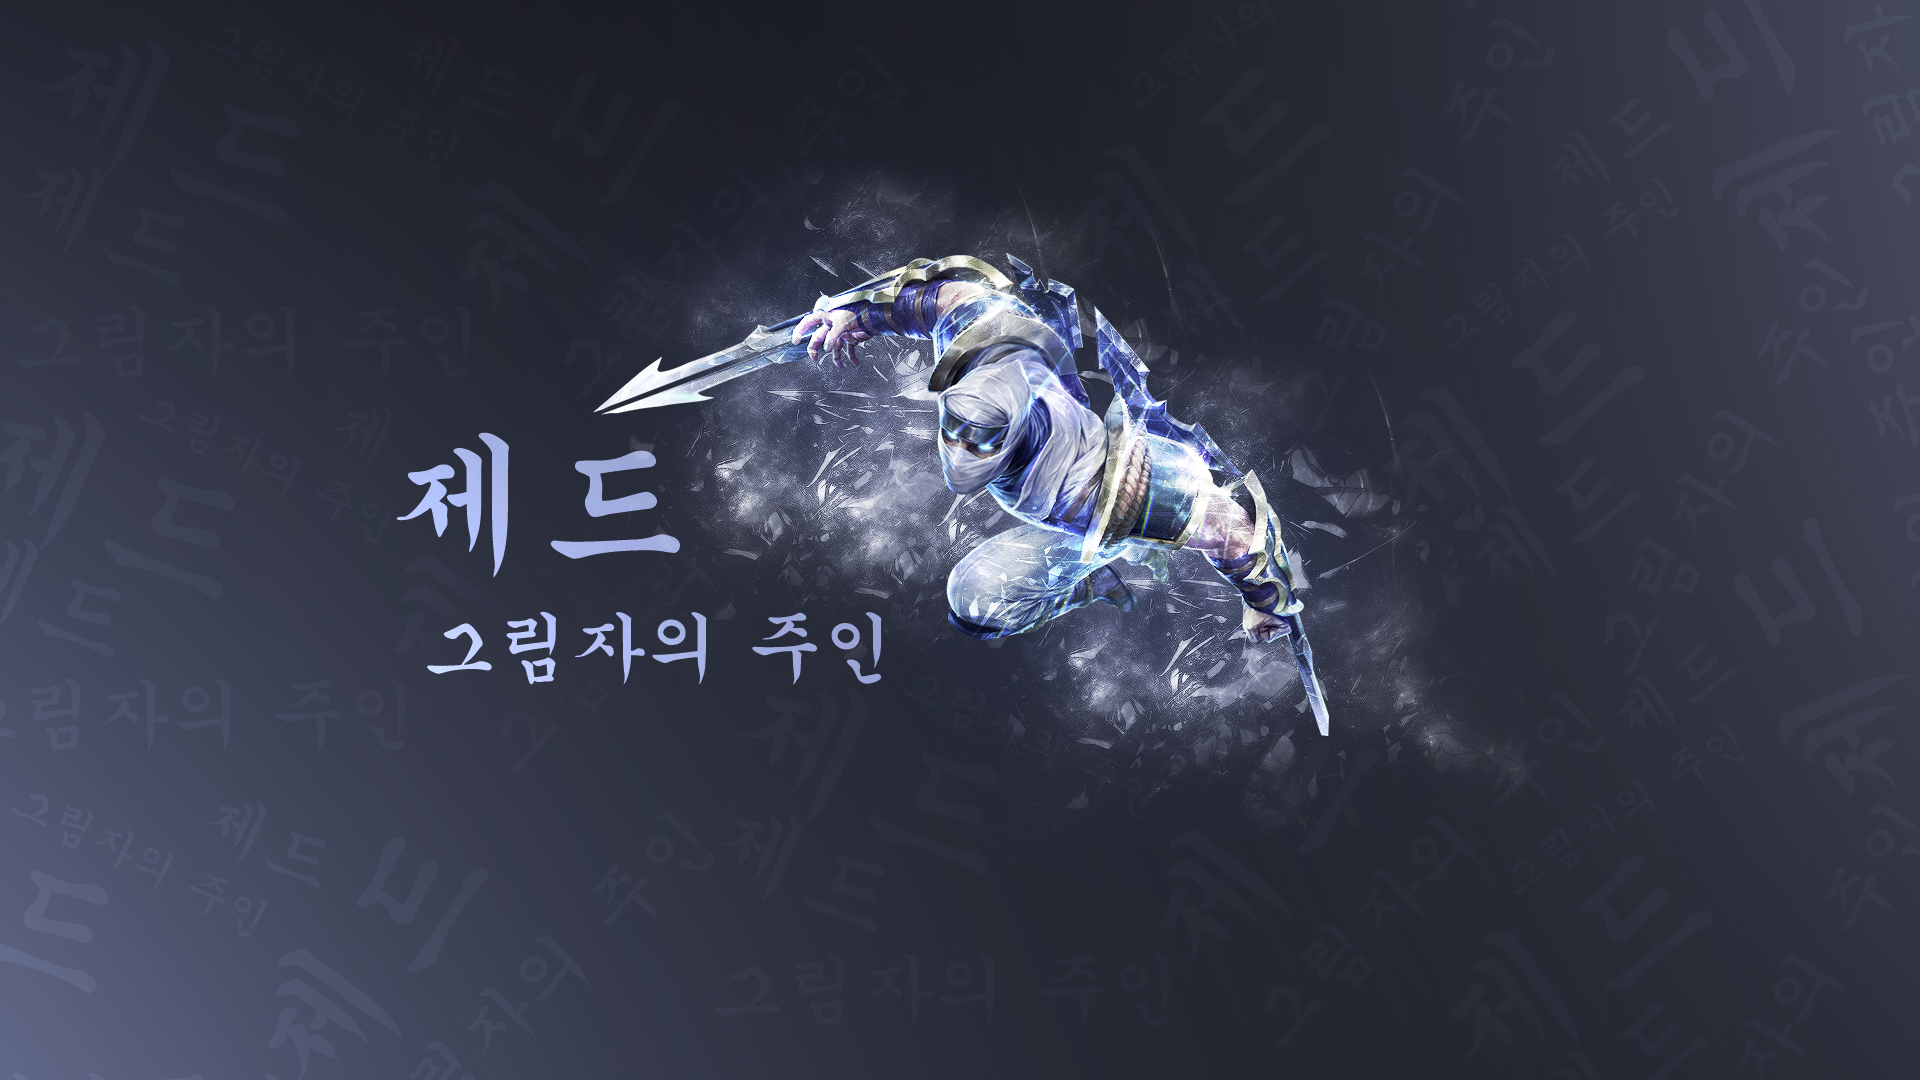 Shockblade Zed Wallpaper 1920x1080 | www.imgkid.com - The ...